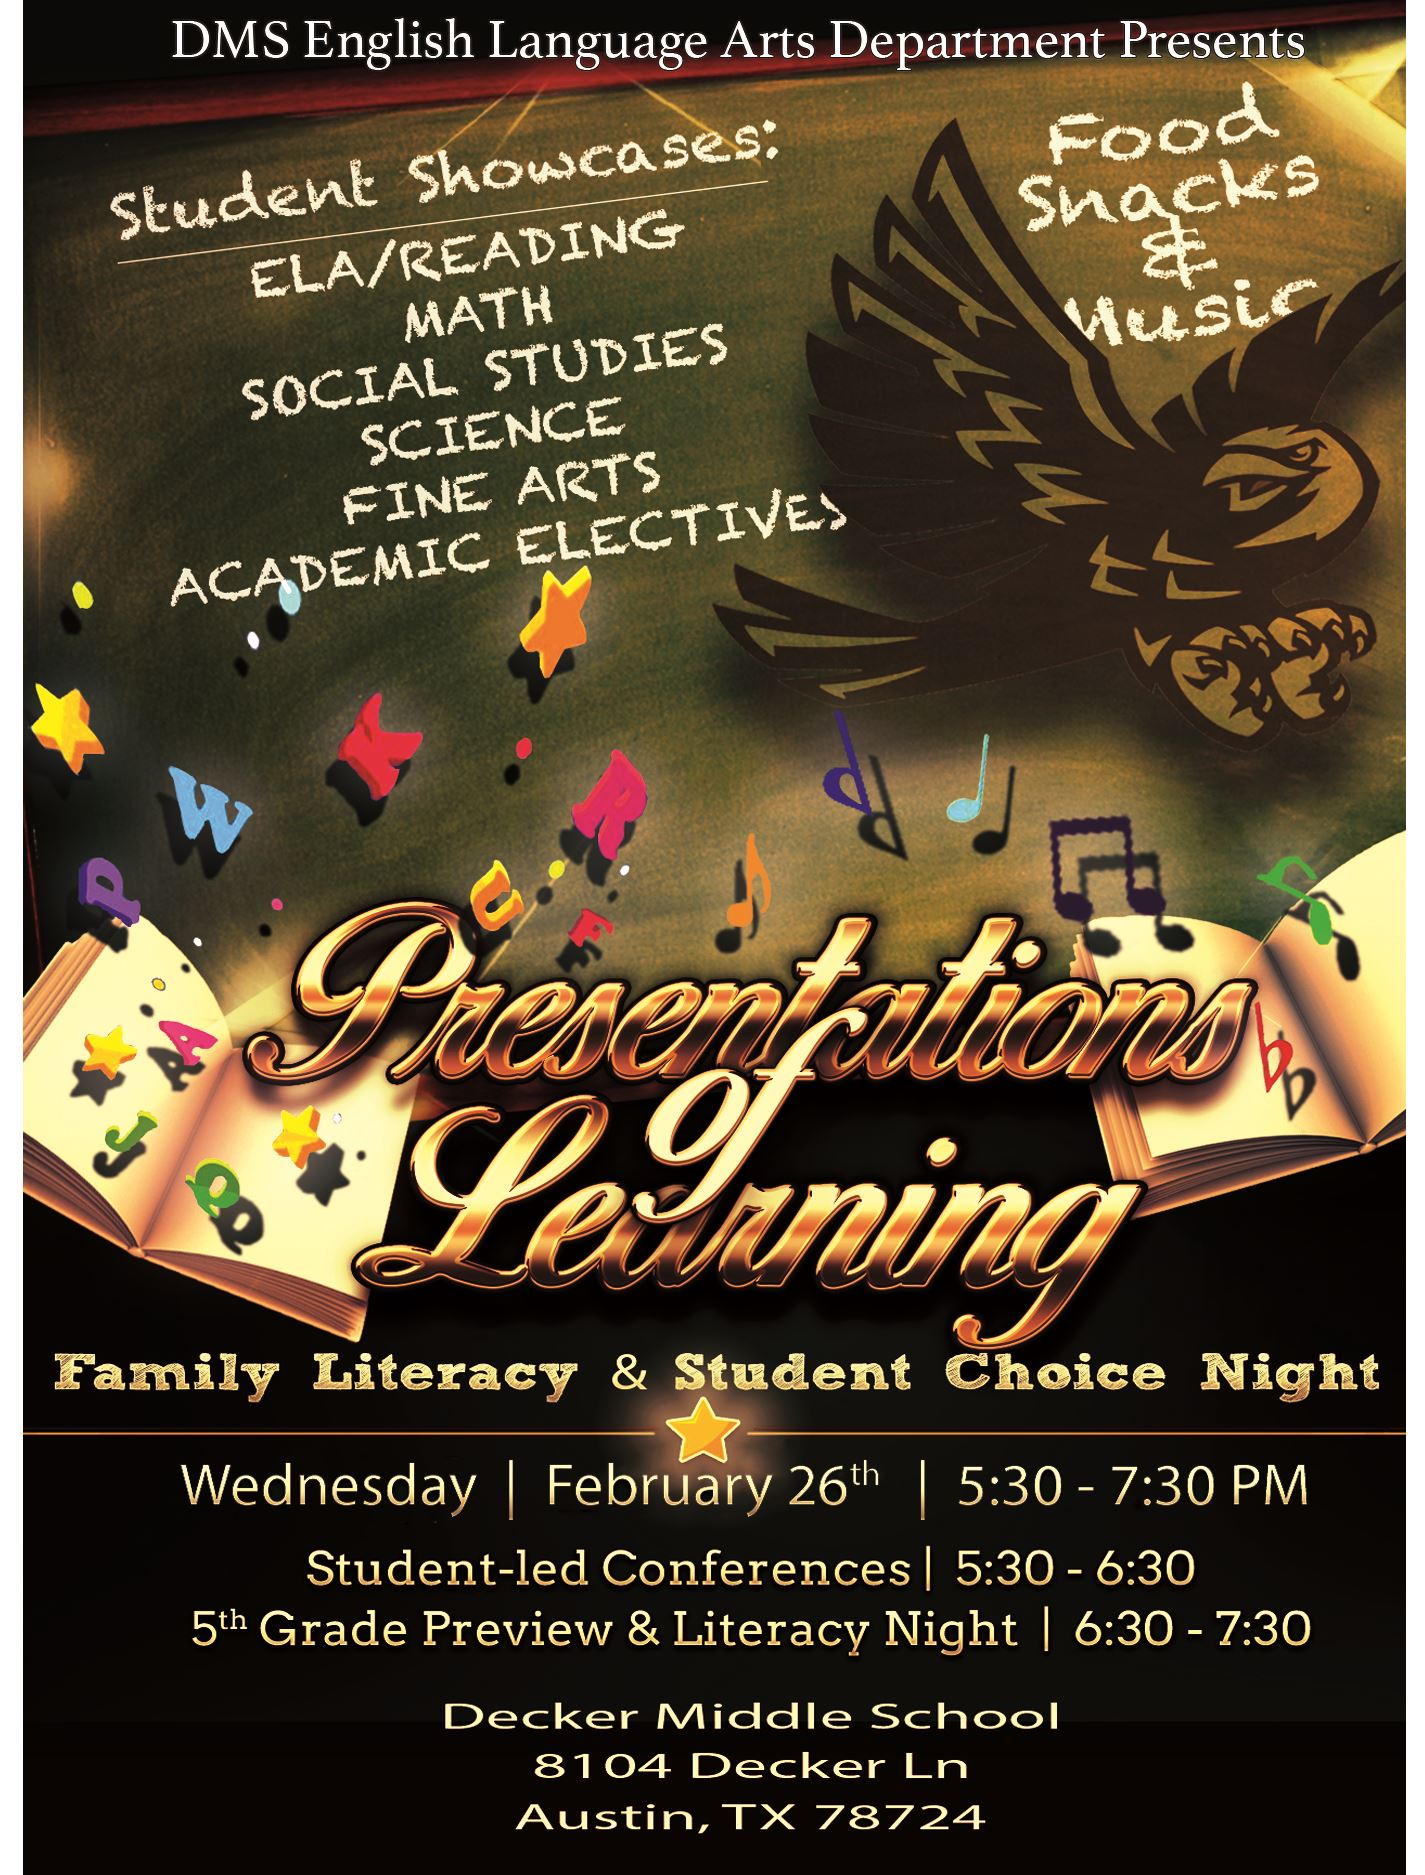 DMS English Language Arts Department   presents   Presentations of Learning  Wednesday | 2.26.20